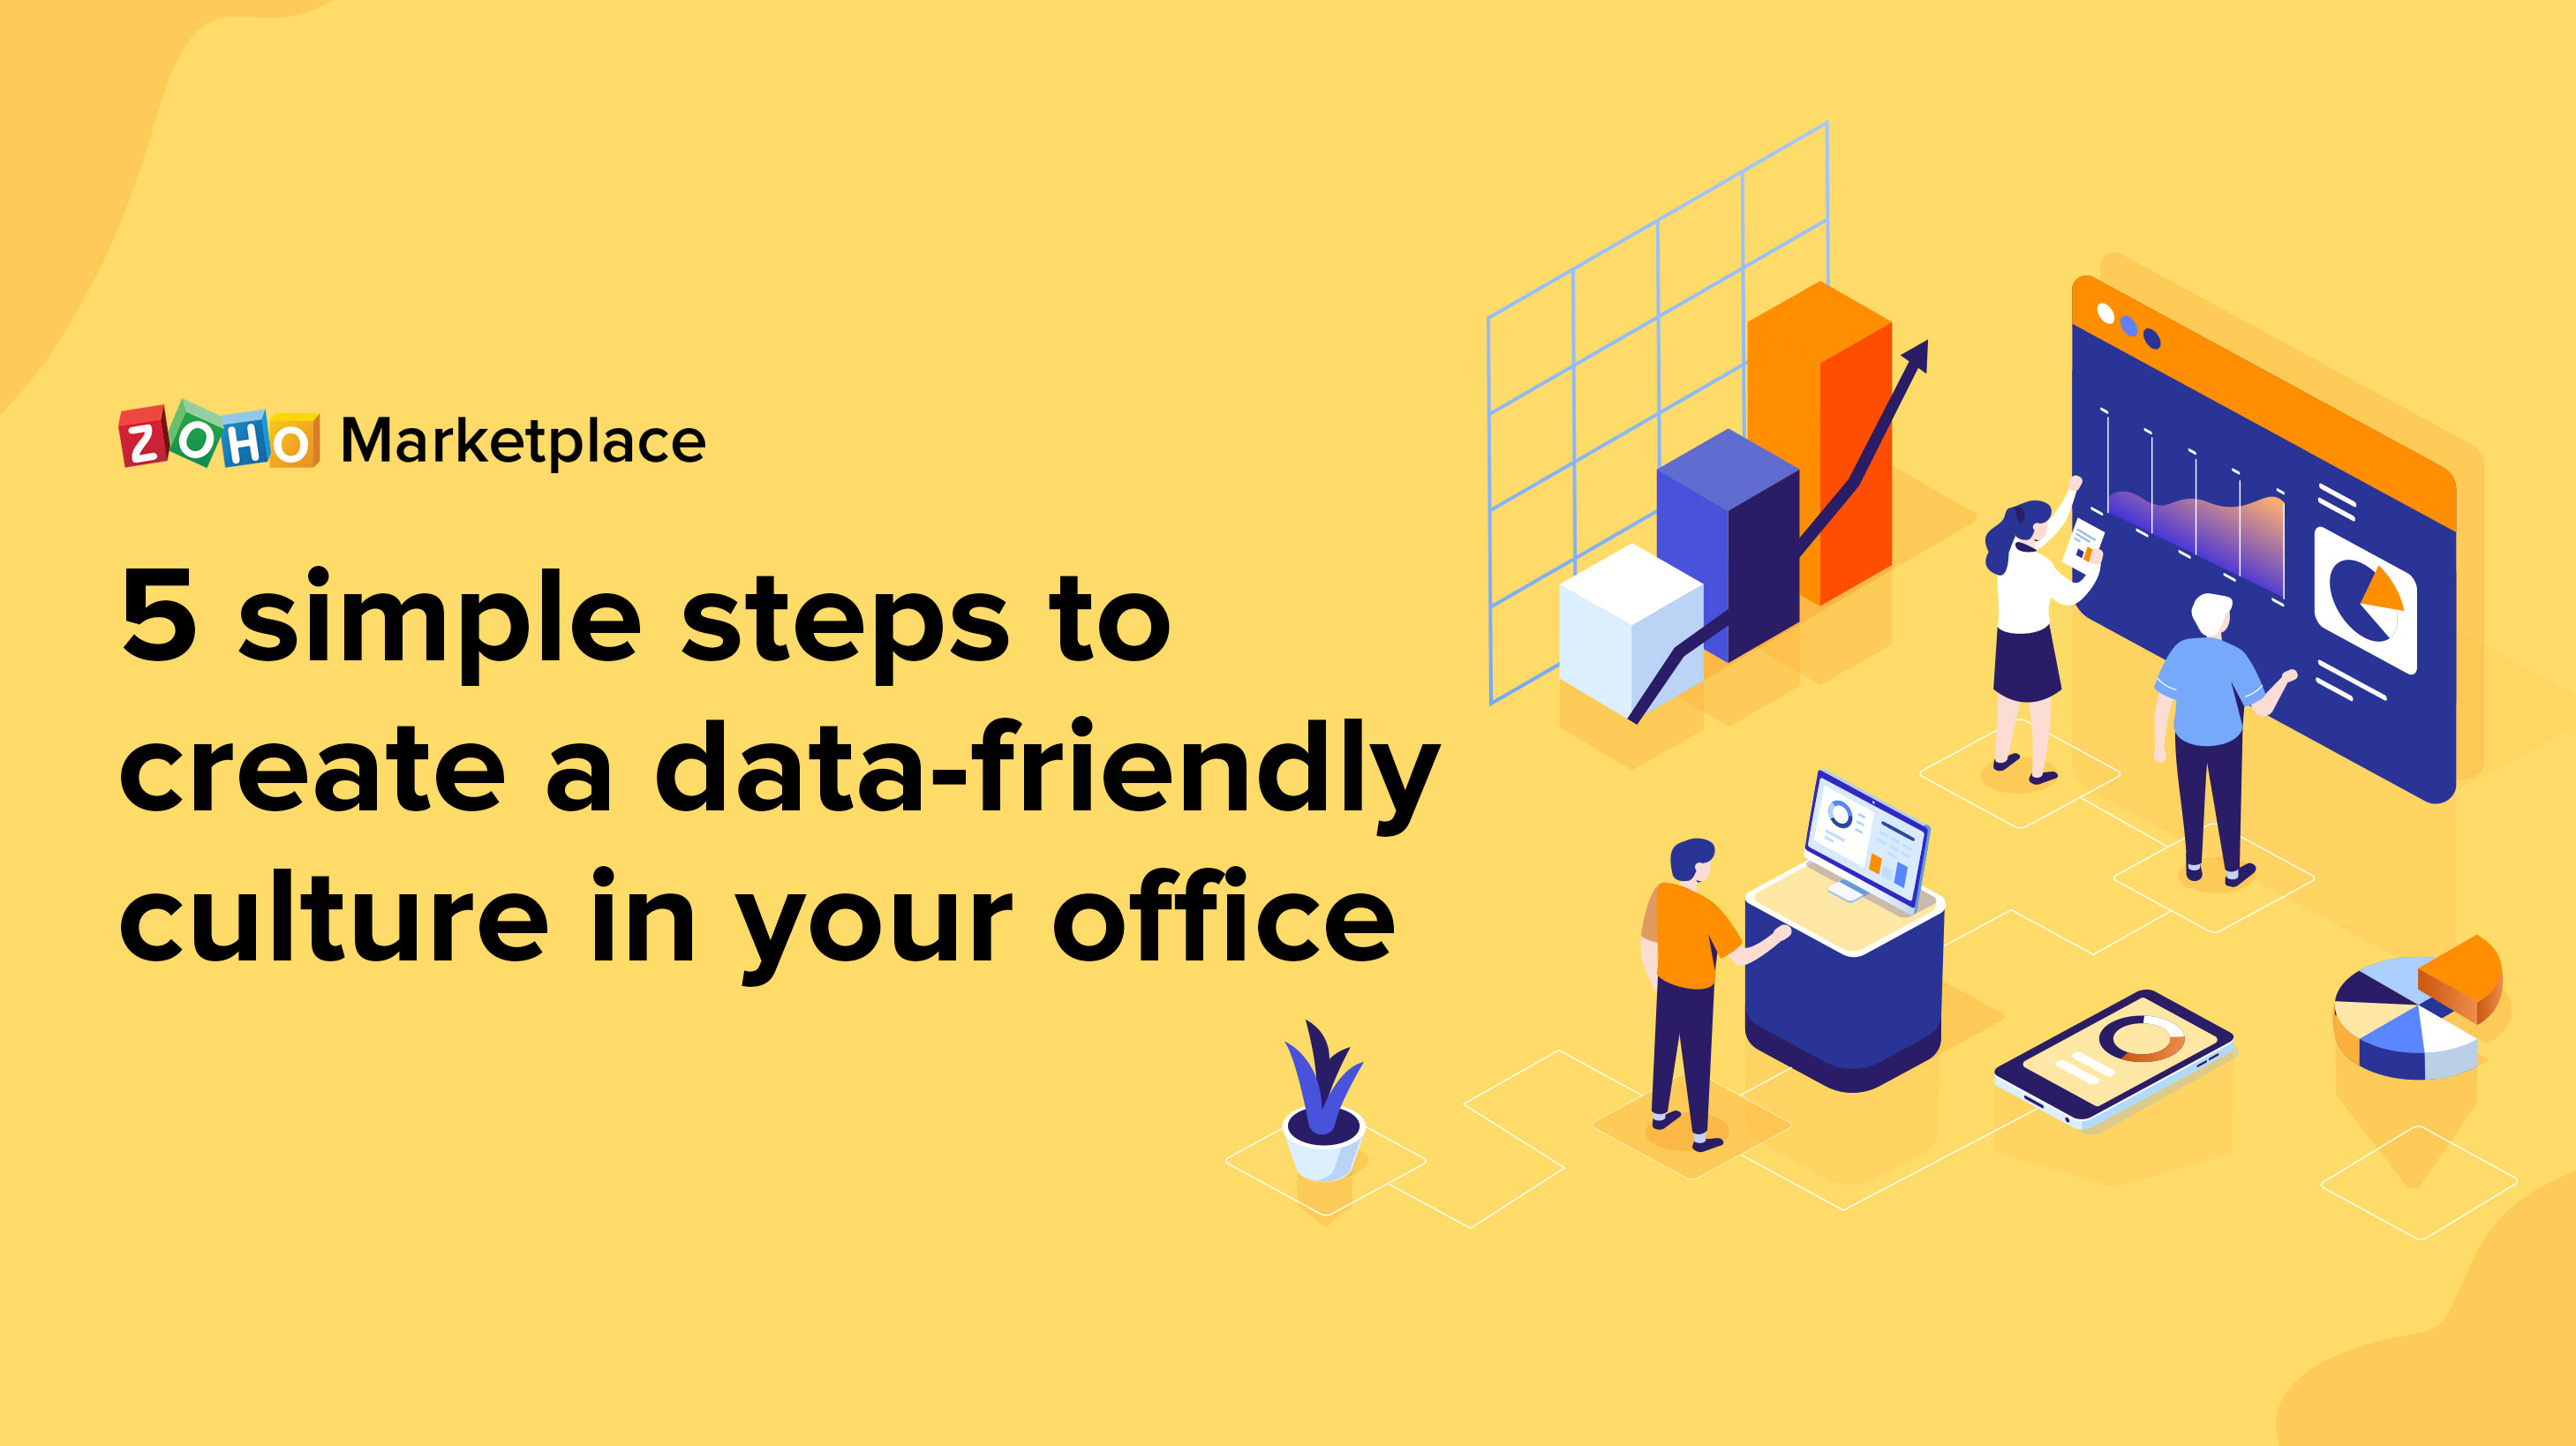 ProTips: 5 simple steps to create a data-friendly culture in your office